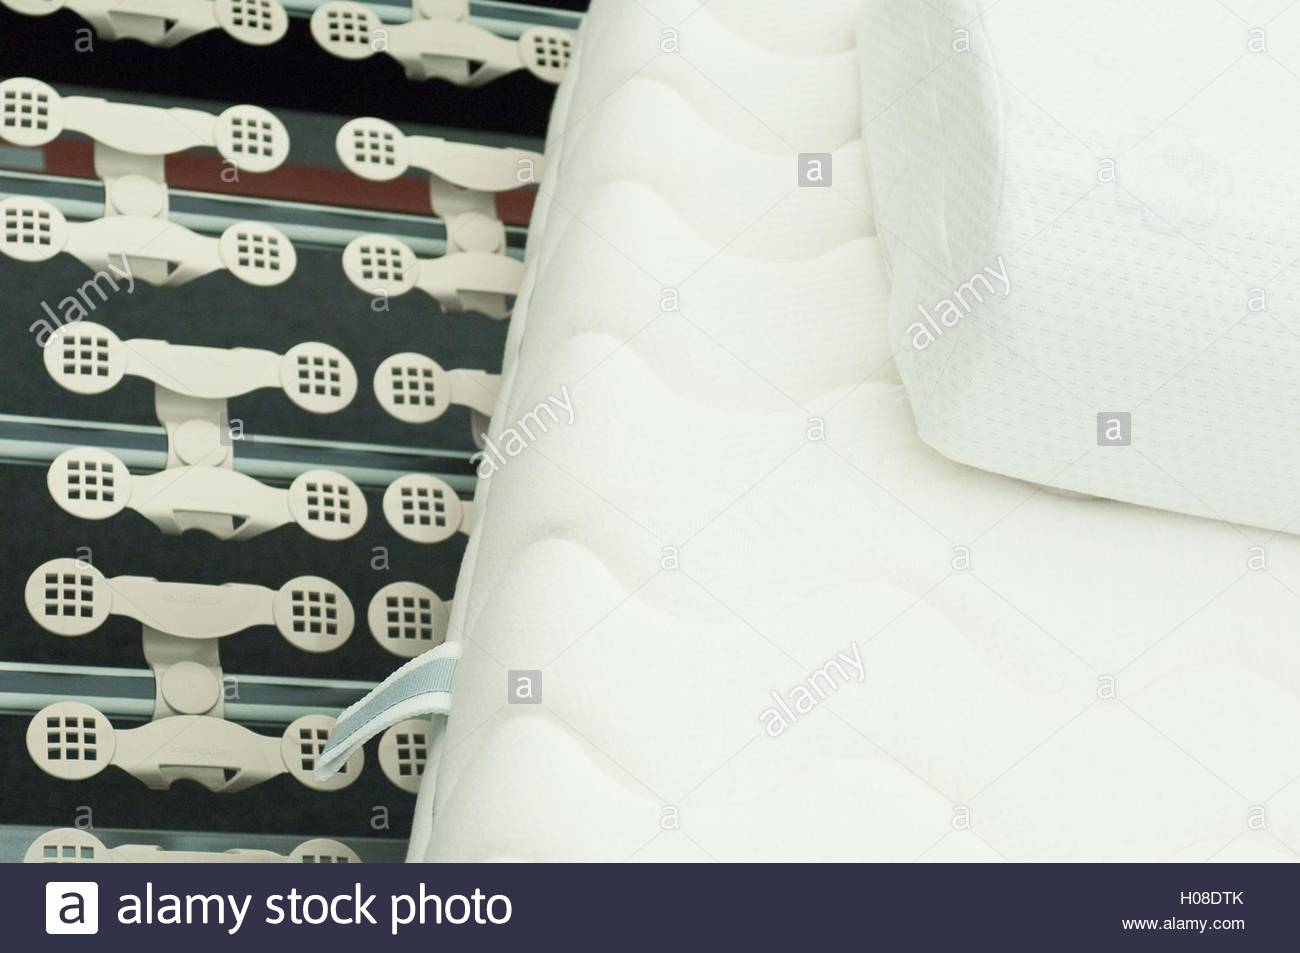 Matratze Stock Photos & Matratze Stock Images - Alamy